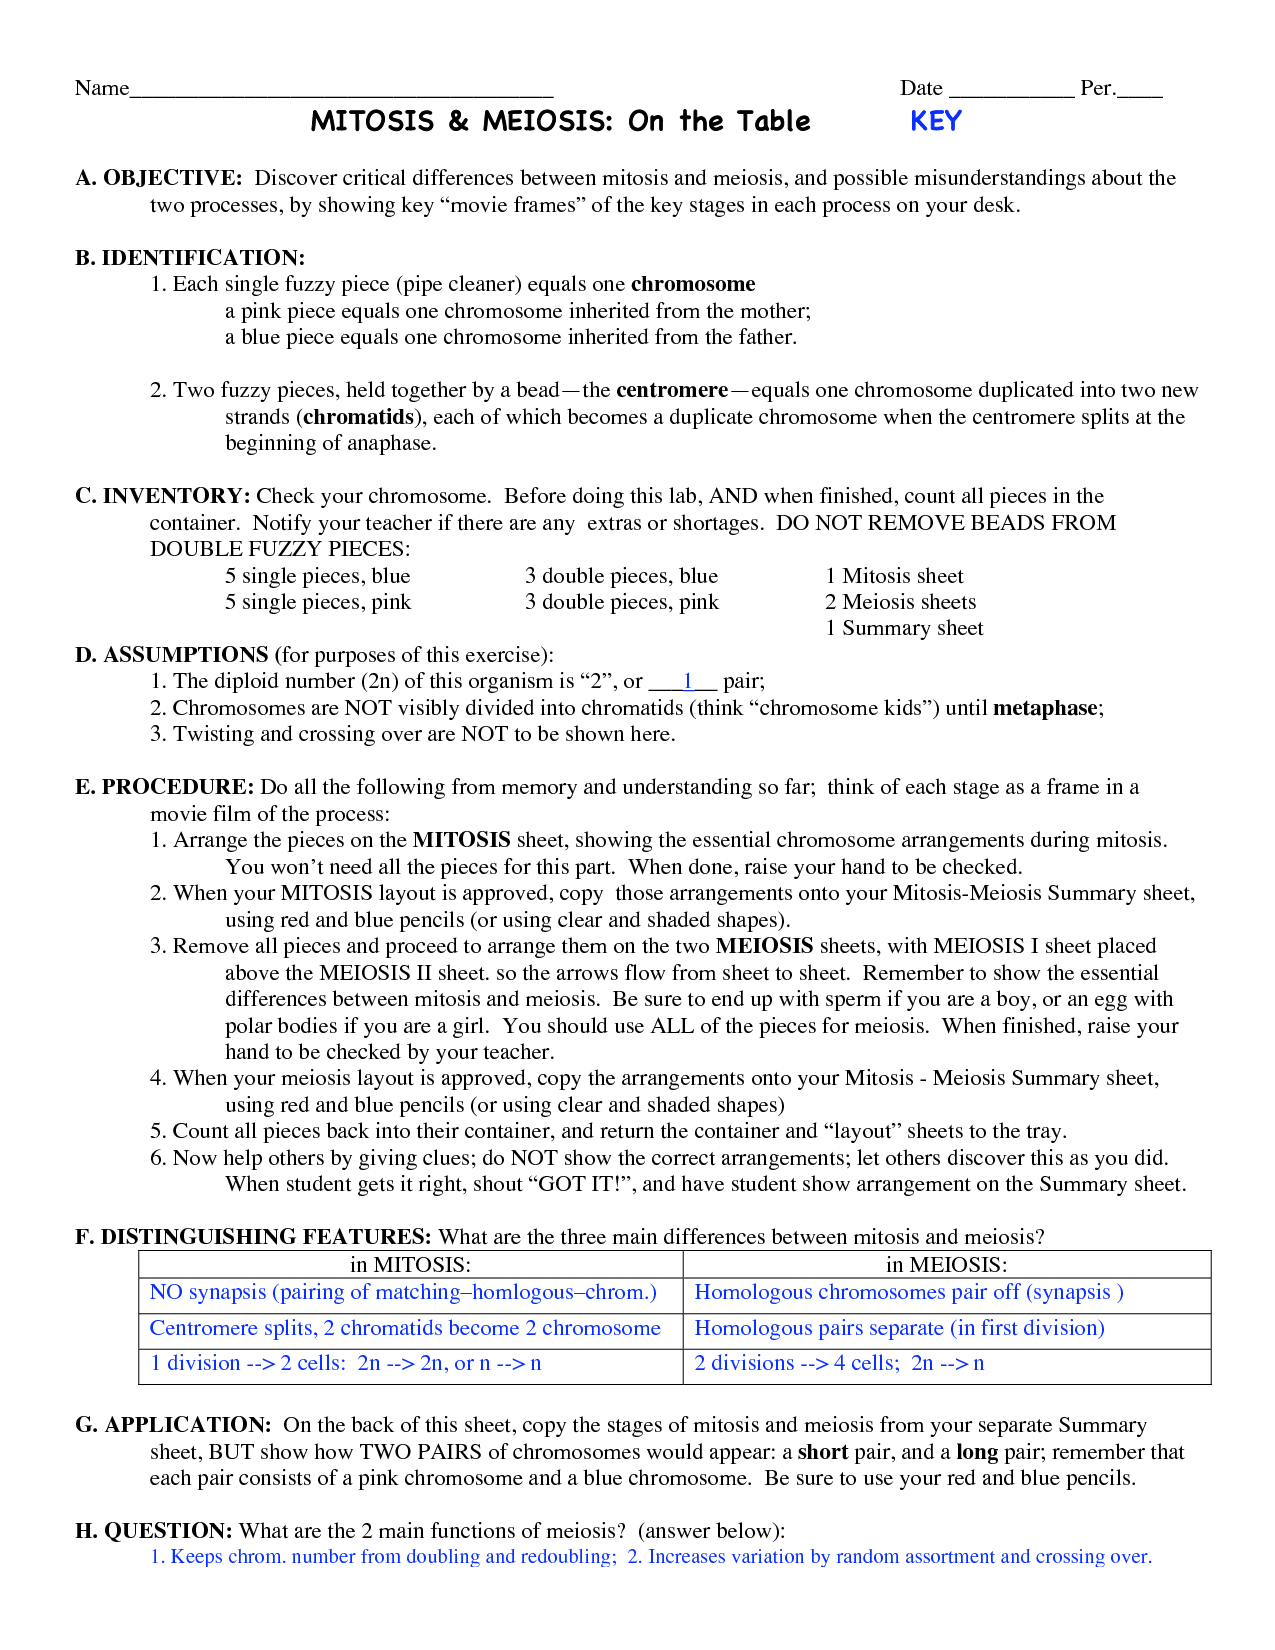 Cell Reproduction Mitosis And Meiosis Worksheet Answers